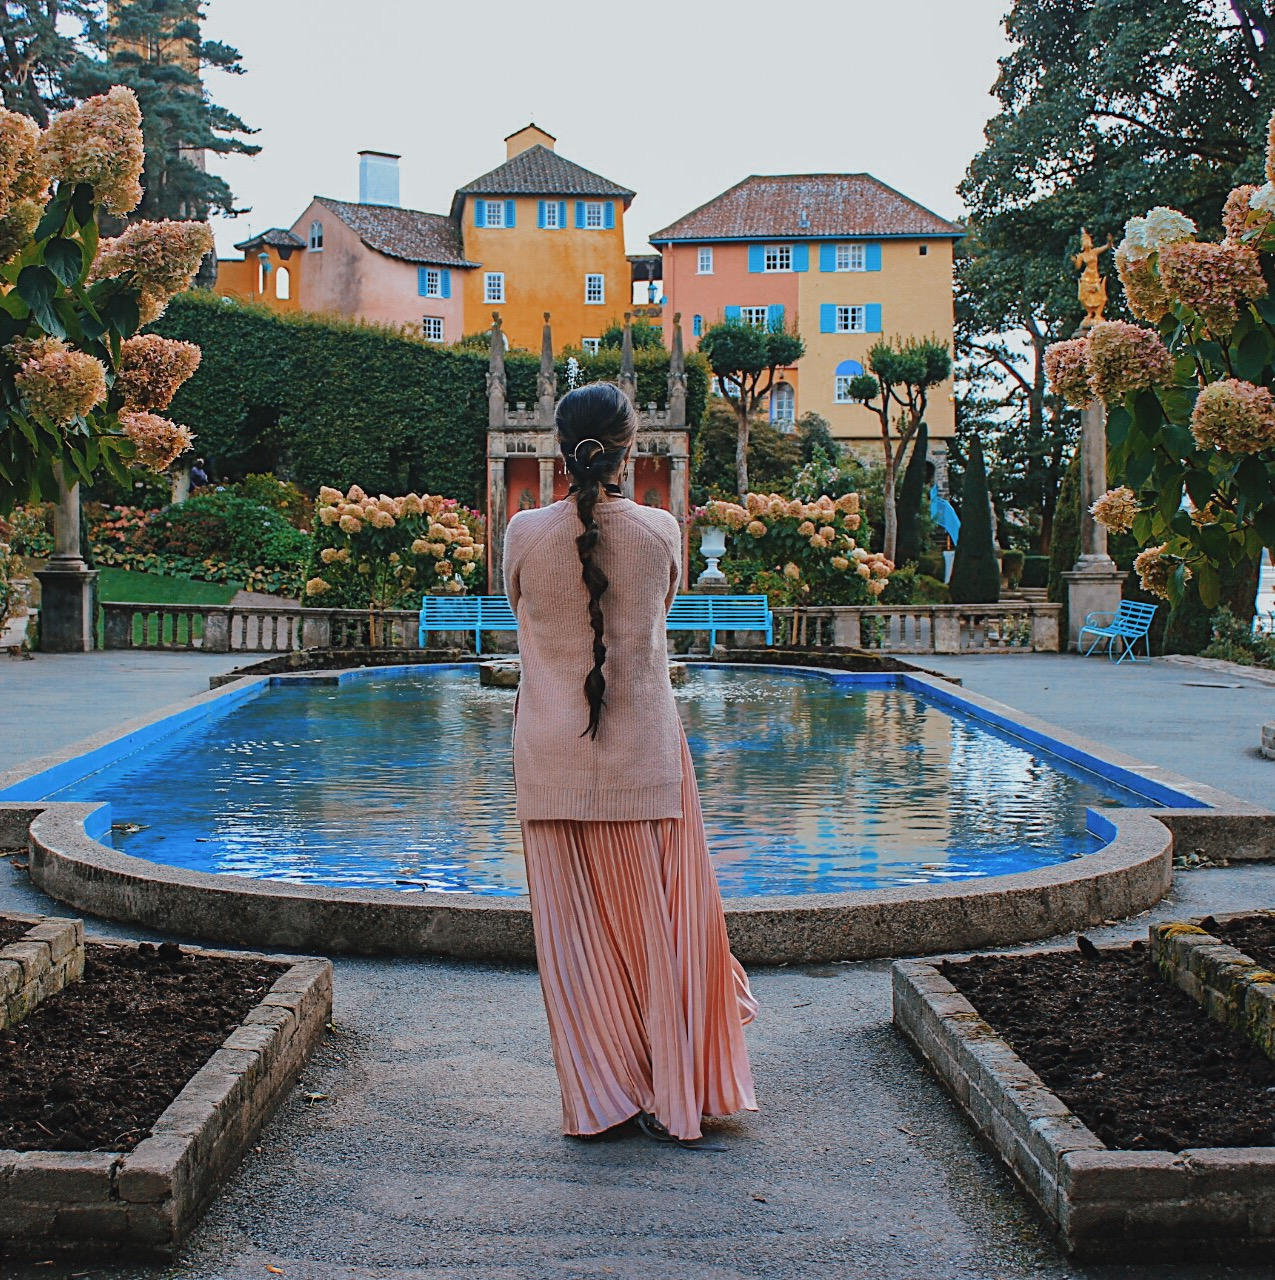 Portmeirion Wales, the most colourful vibrant village in the UK